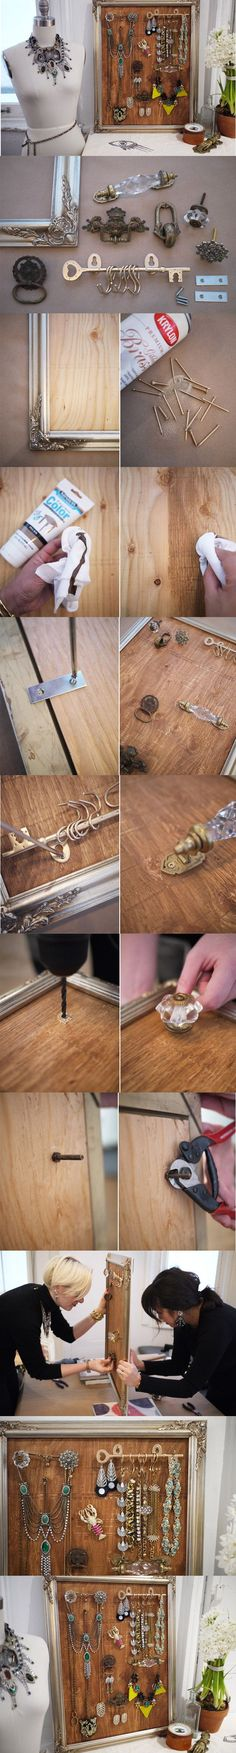 12 Interesting And Useful Daily DIY Ideas